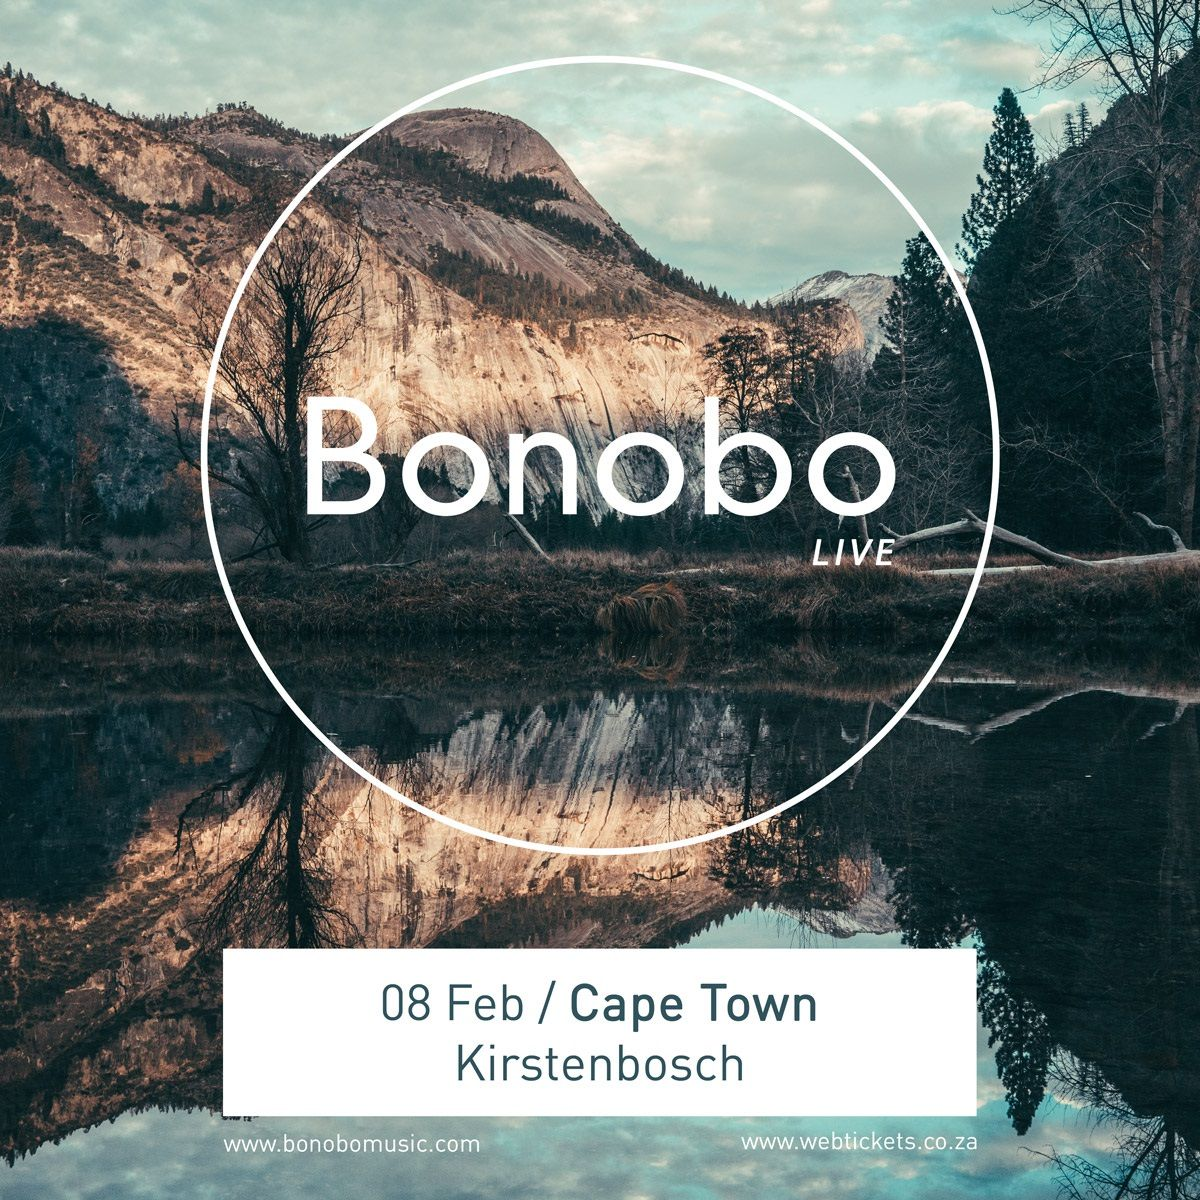 Bonobo Live With 8 Piece Band To Perform At Kirstenbosch photo